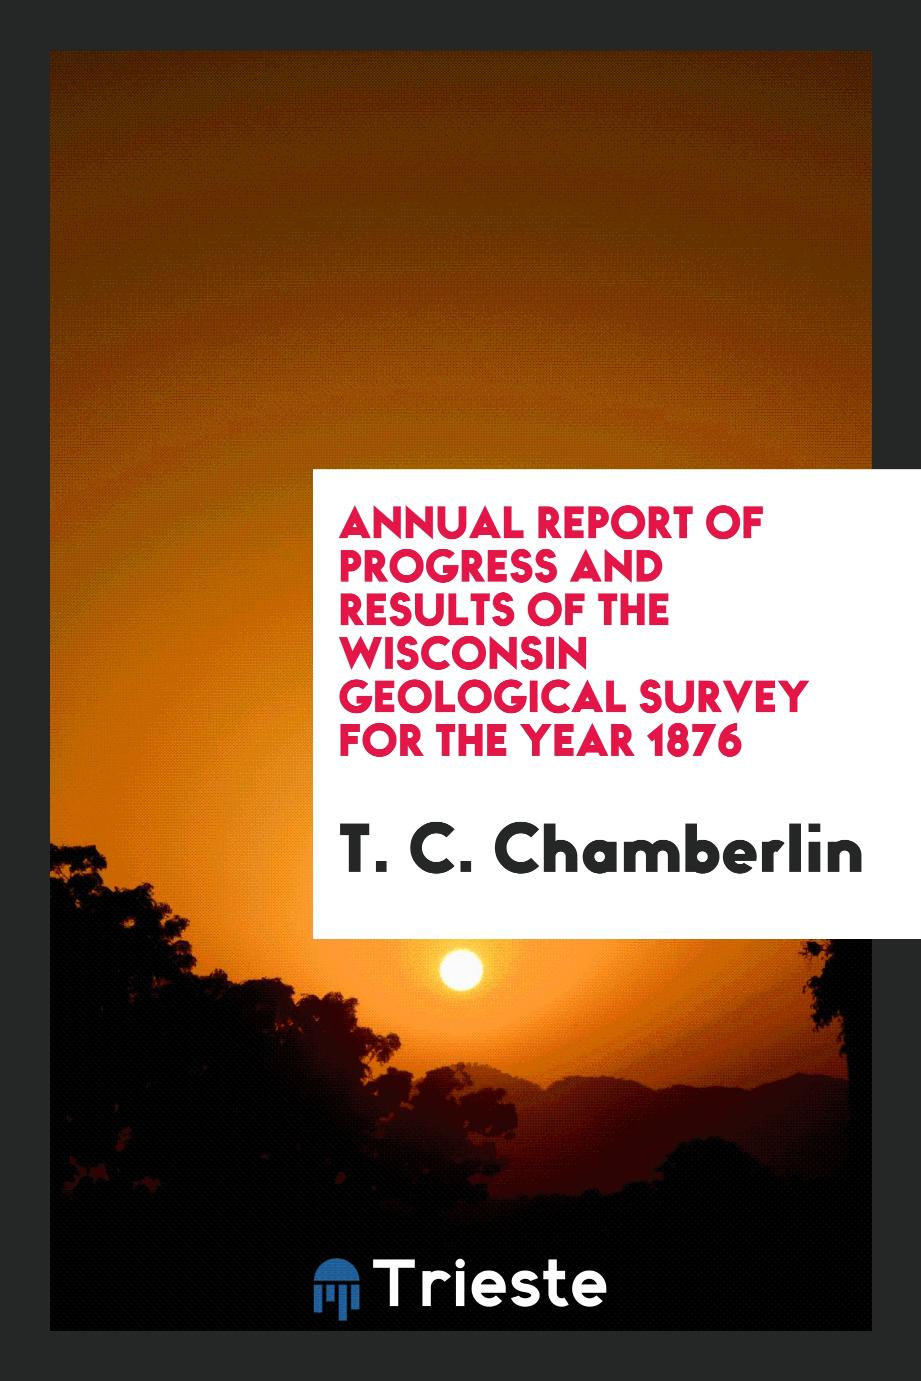 Annual Report of progress and results of the wisconsin geological survey for the year 1876